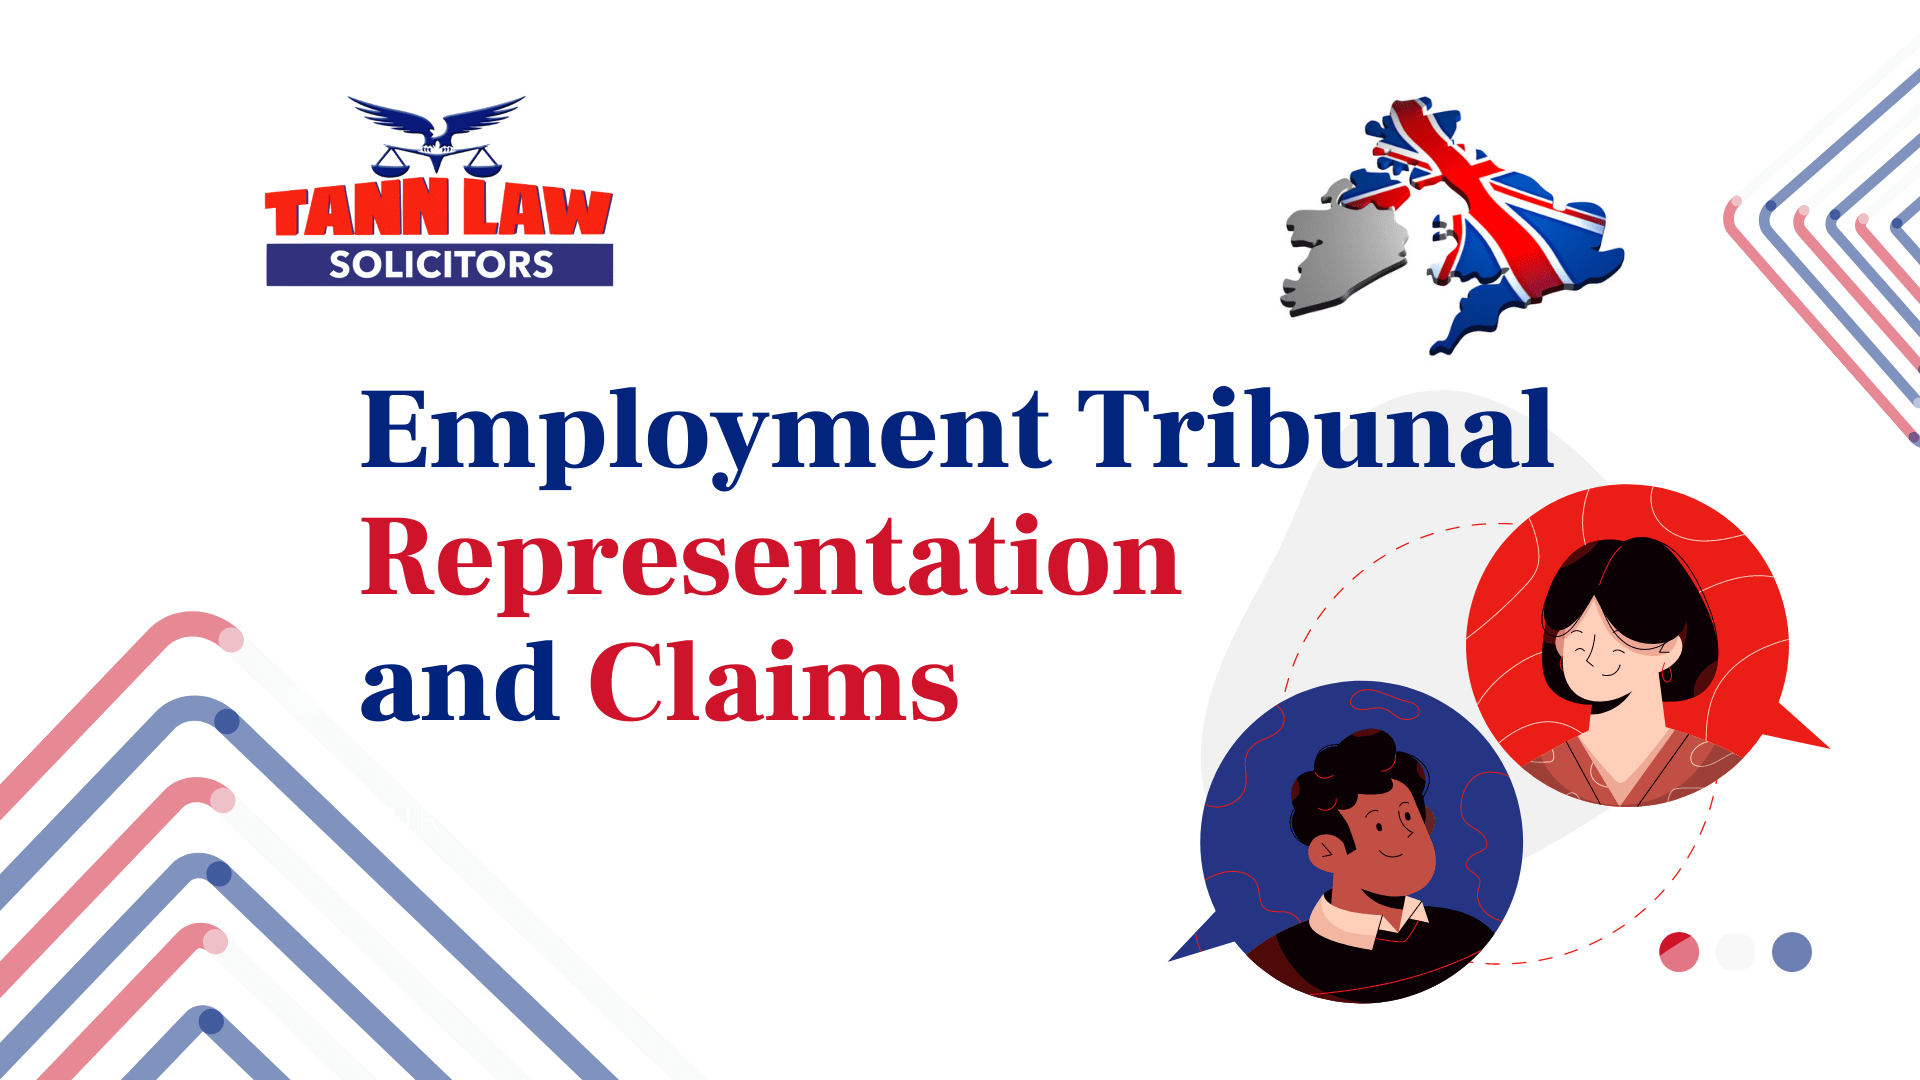 Employment Tribunal Representation and Claims